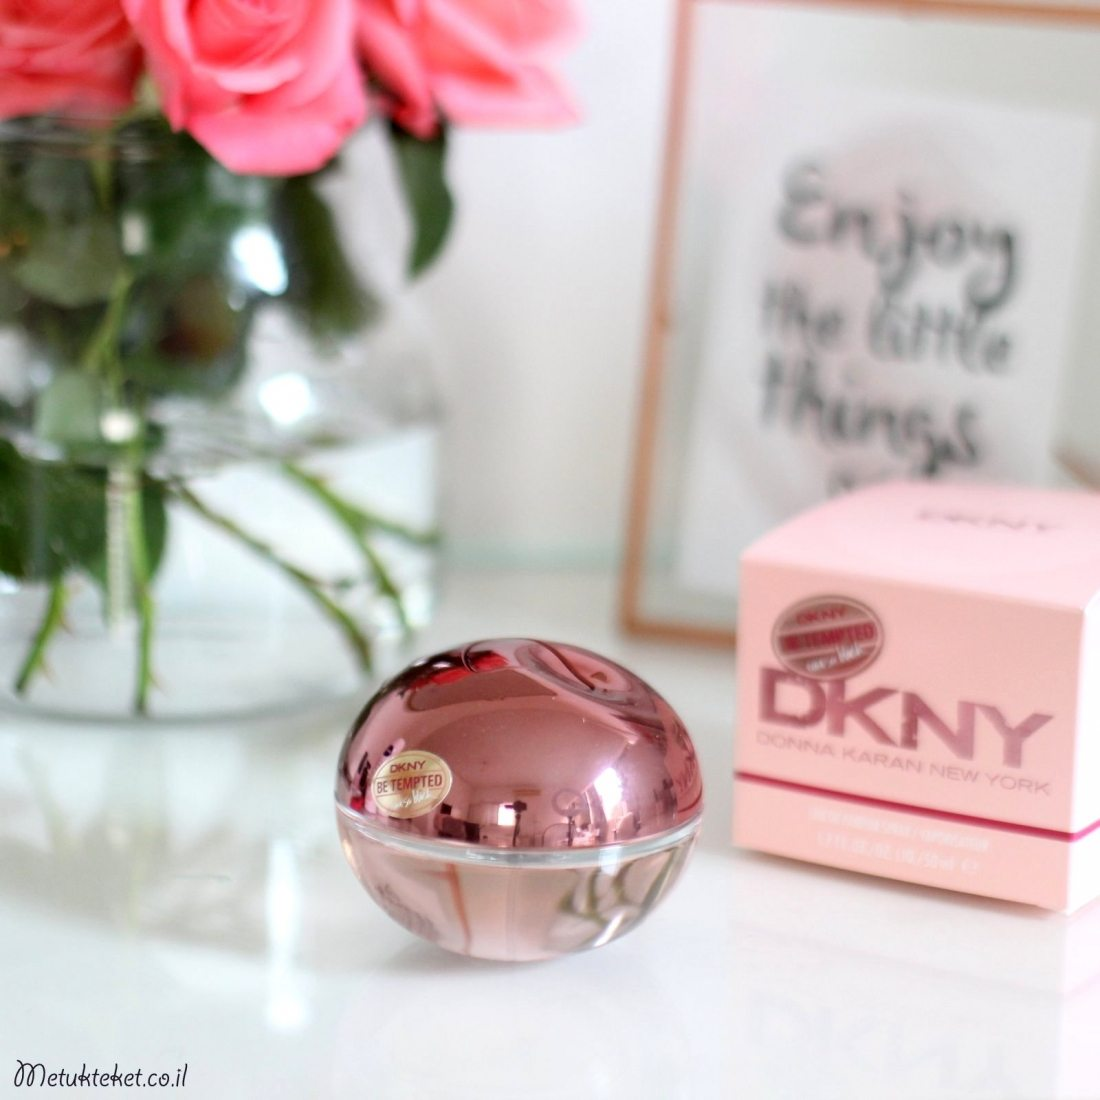 בי דלישס, דונה קארן, Be Tempted Eau Blush DKNY